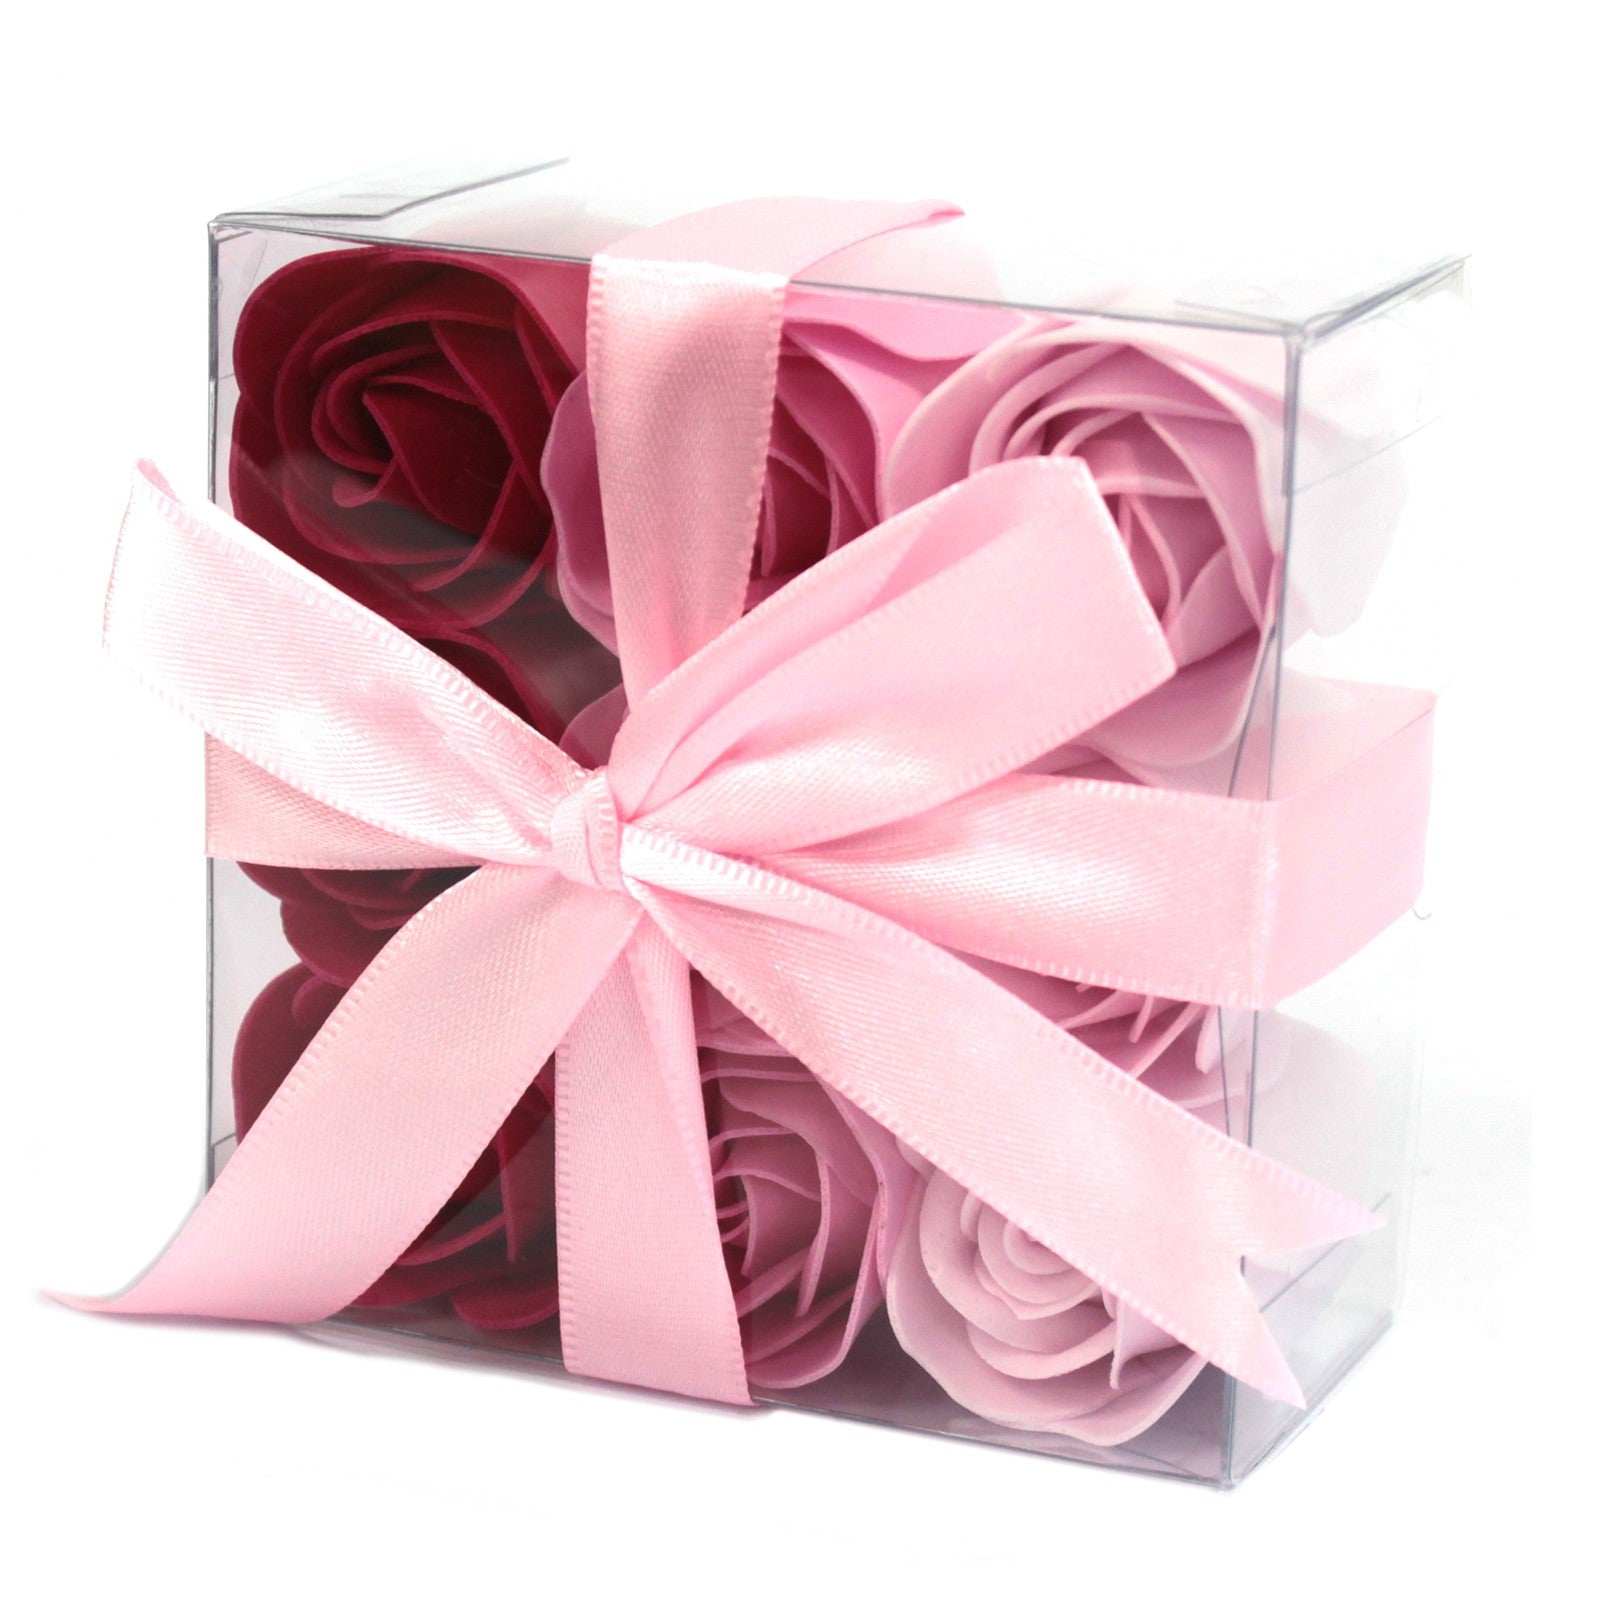 Soap Flowers - Set of 9 Pink Roses